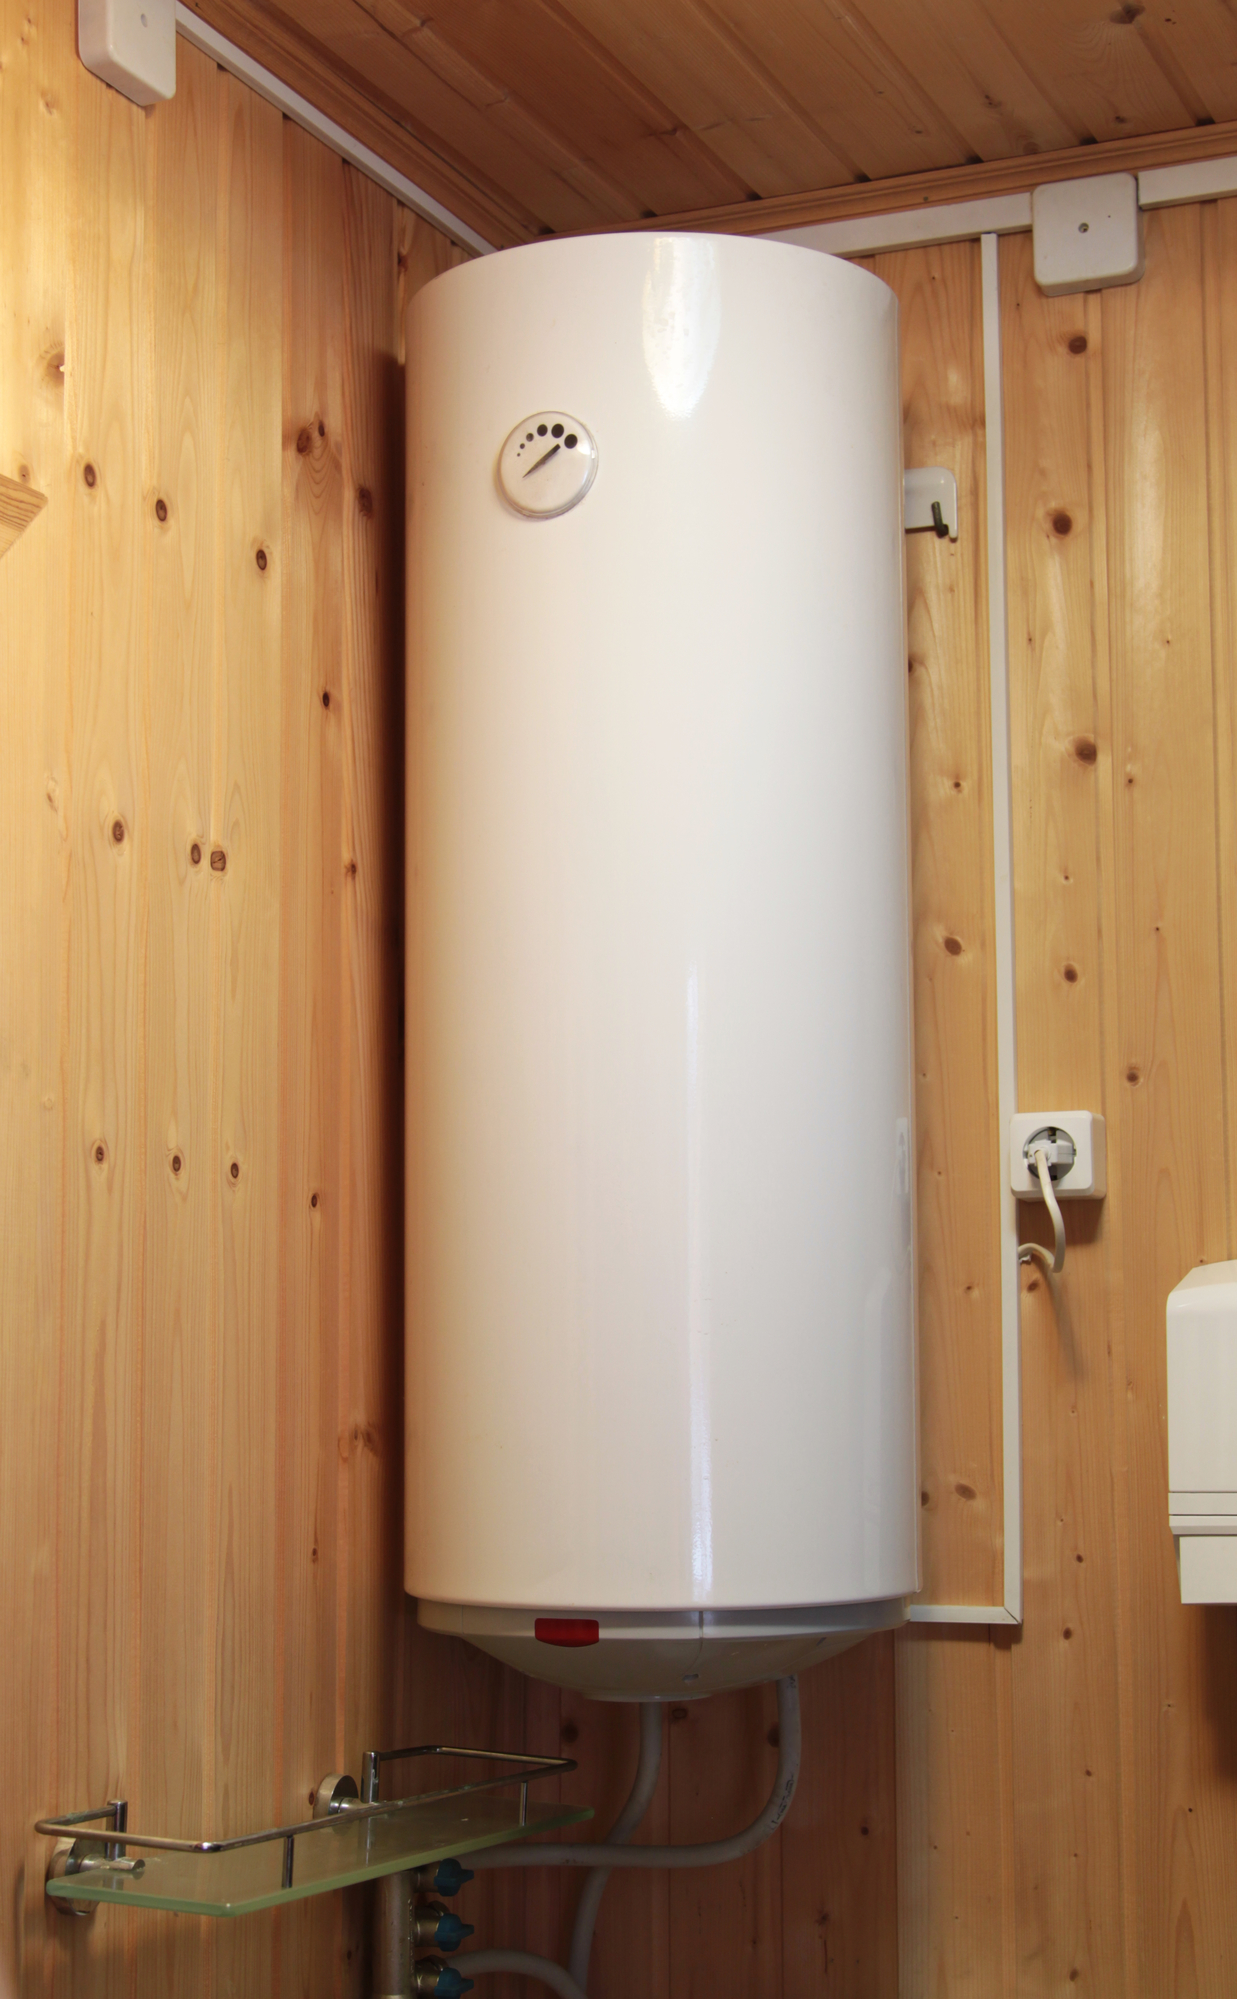 electric-hot-water-heater-wooden-wall